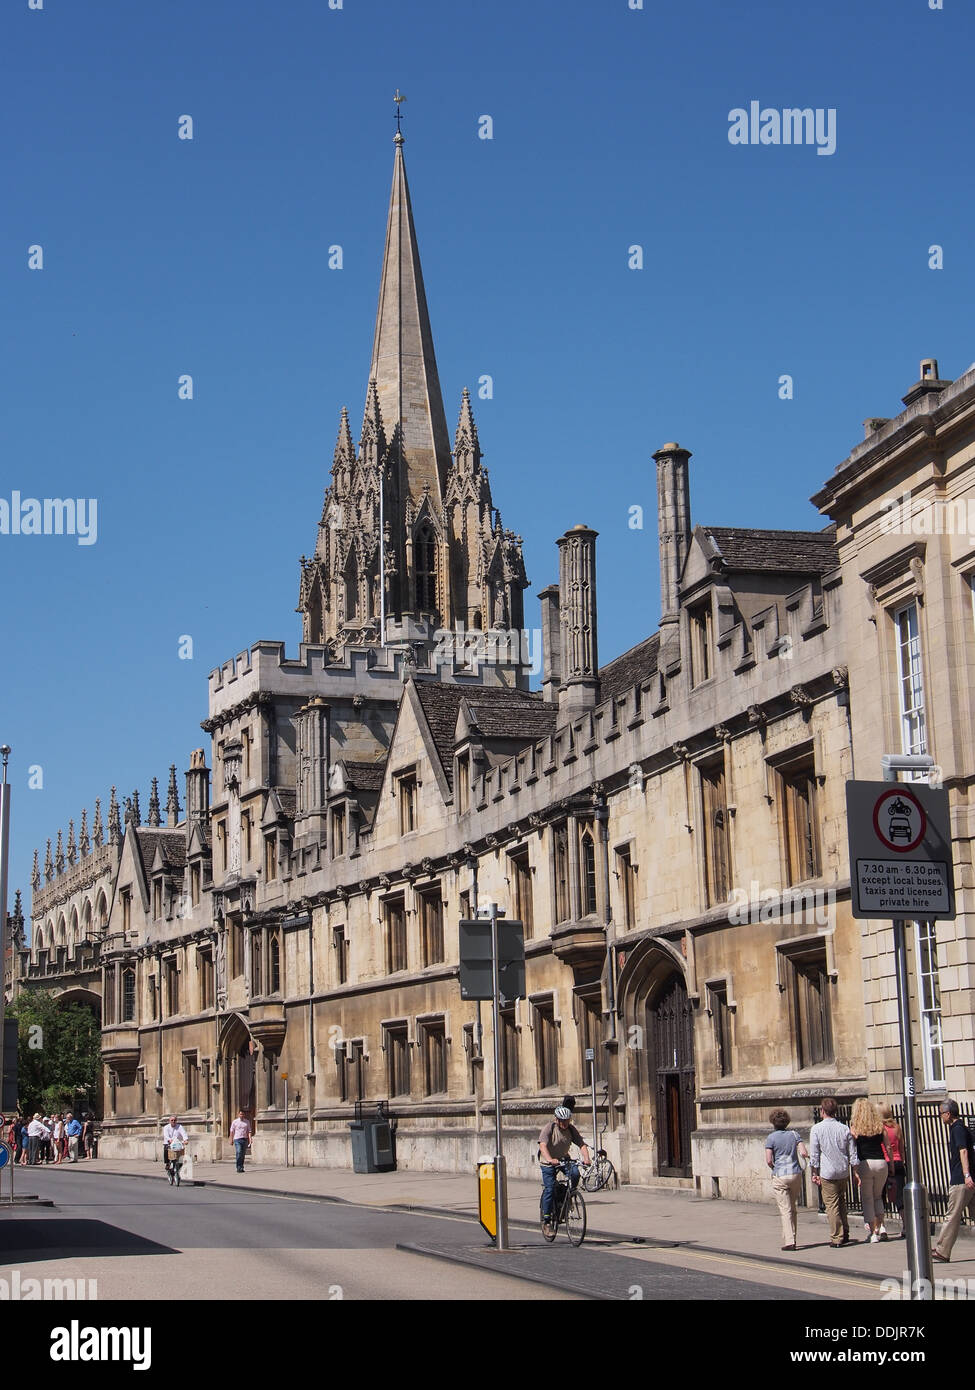 Oxford High Street and St. Mary's Tower - Stock Image